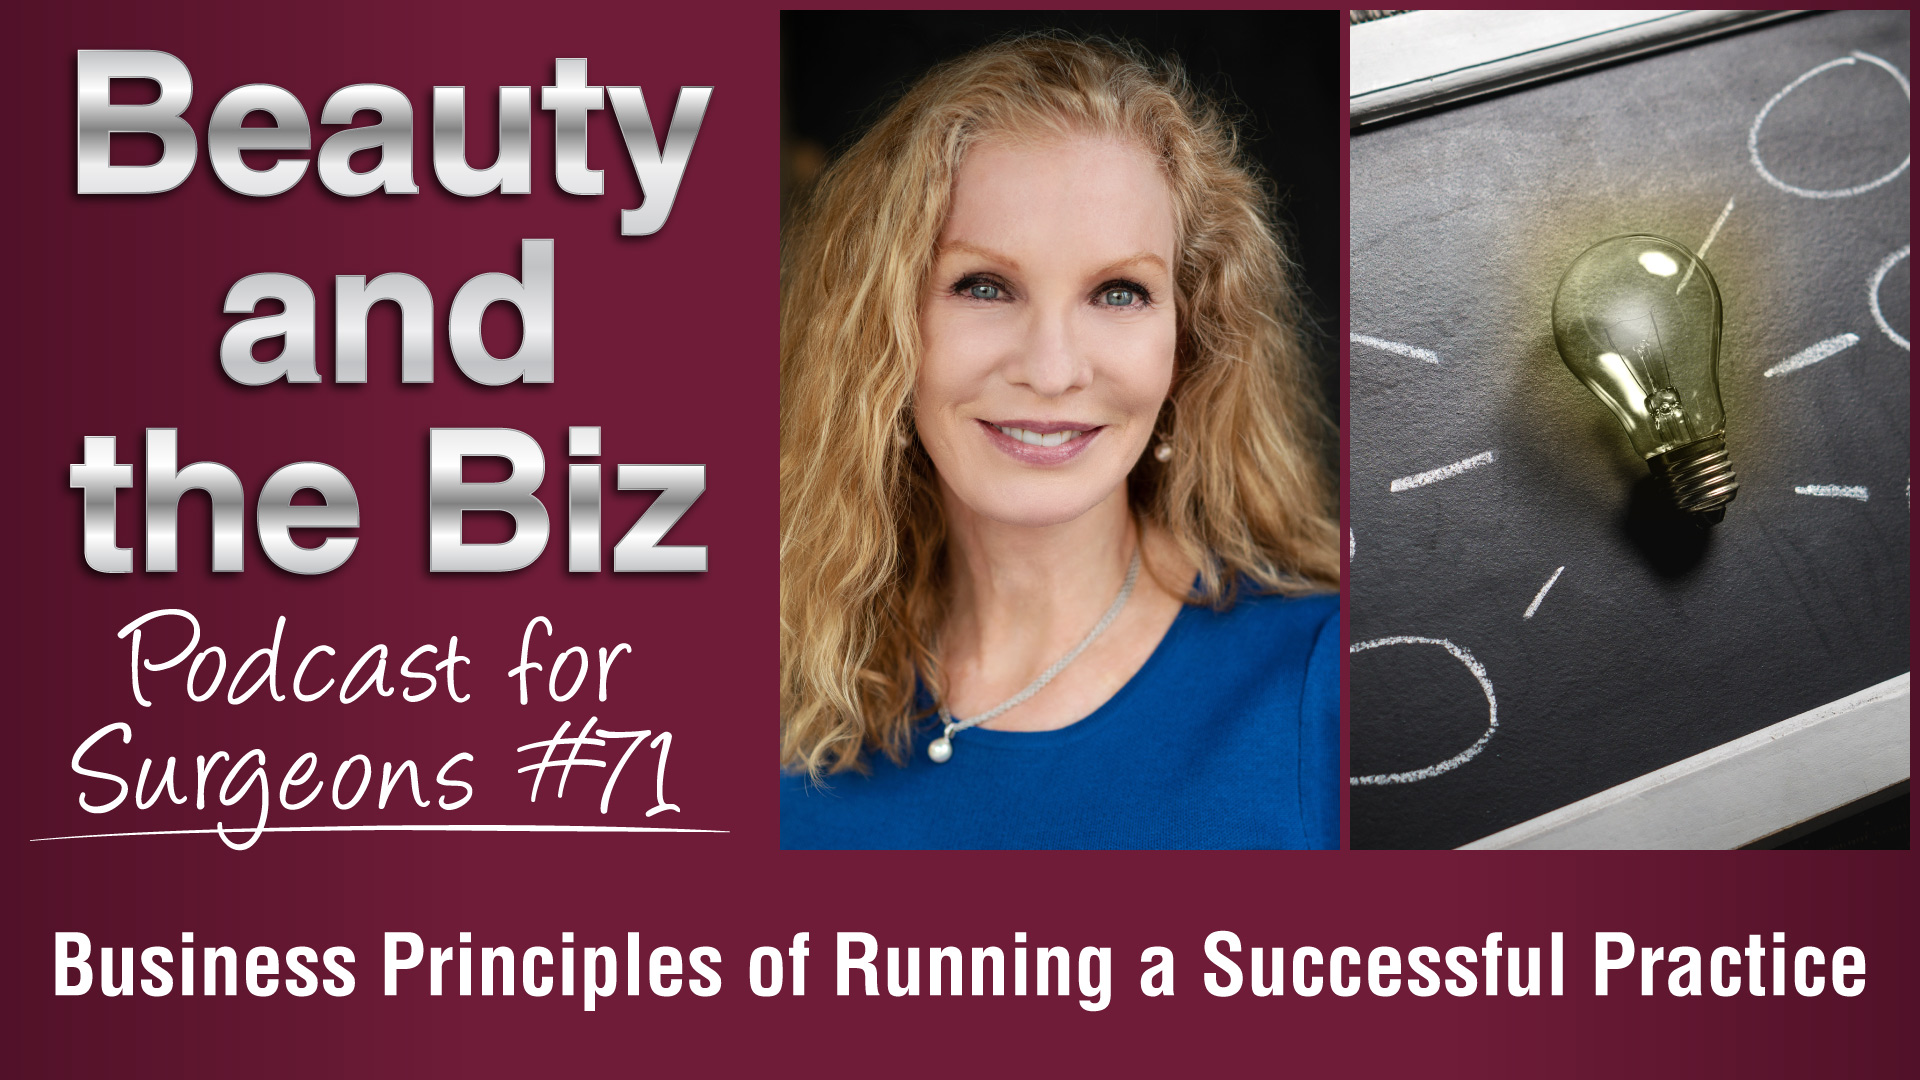 Ep.71: Business Principles of Running a Successful Practice